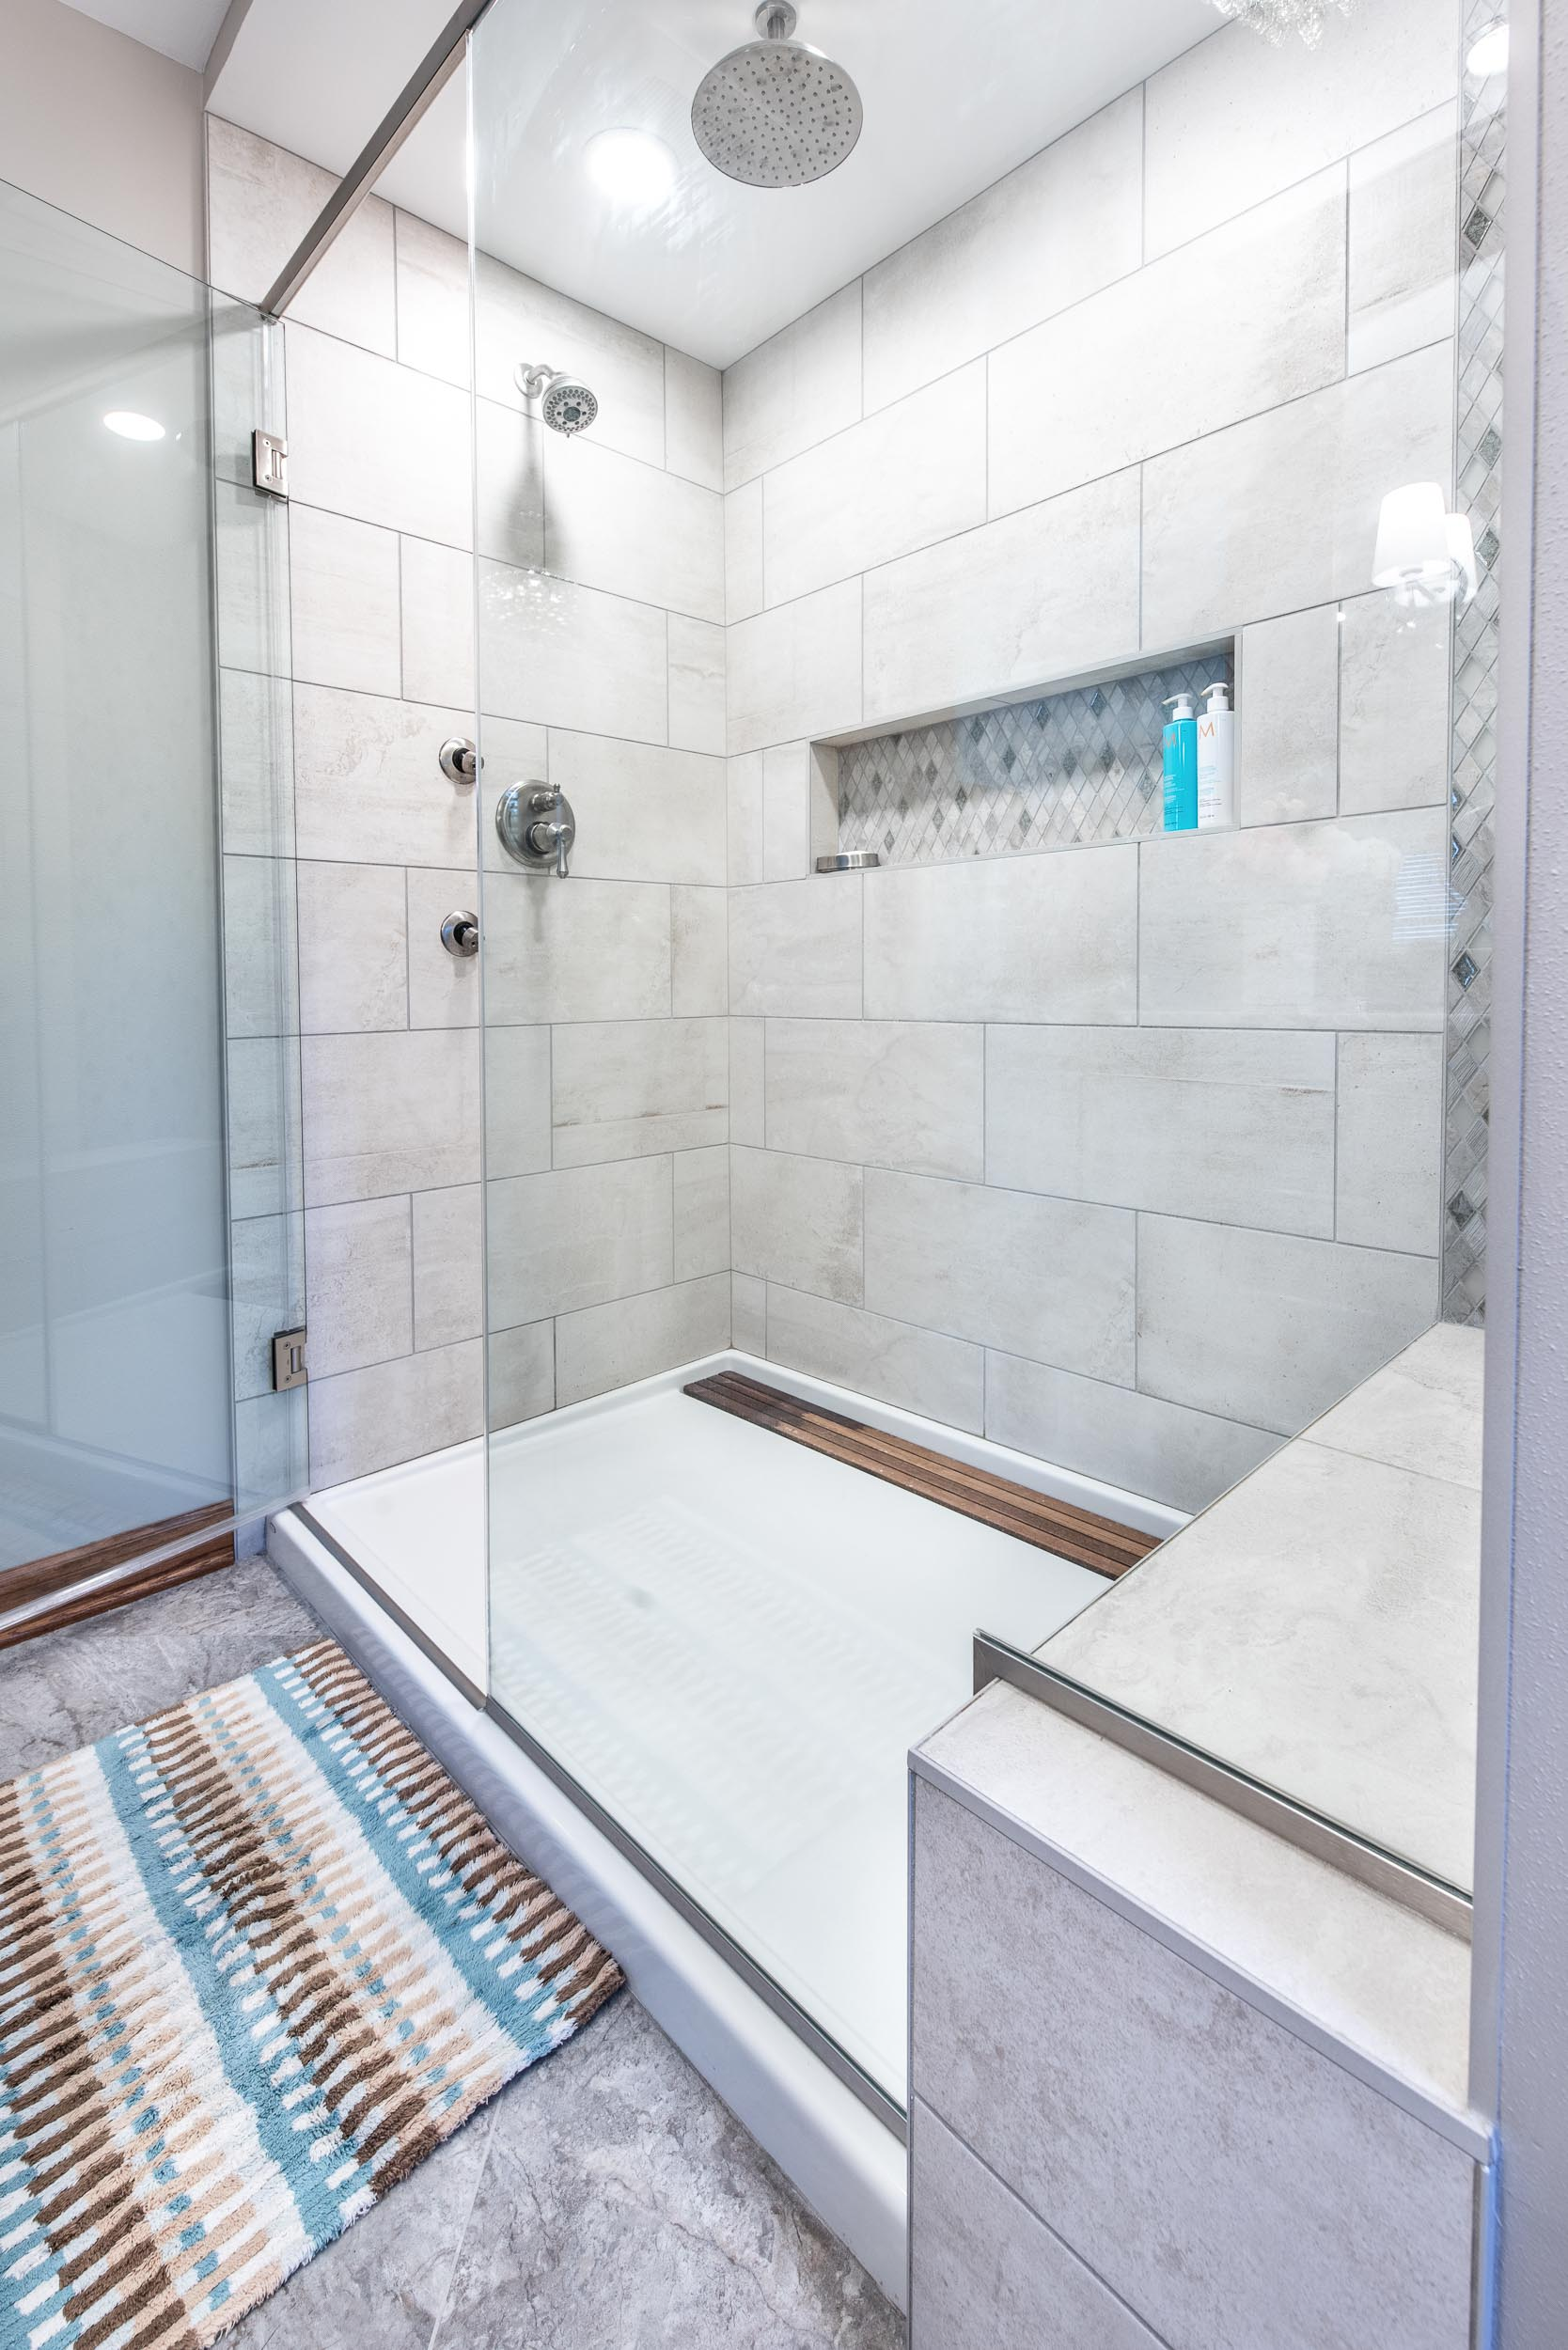 "The Shower Tile is Biocrete Field 12"" x 24"" in Melted Ice."